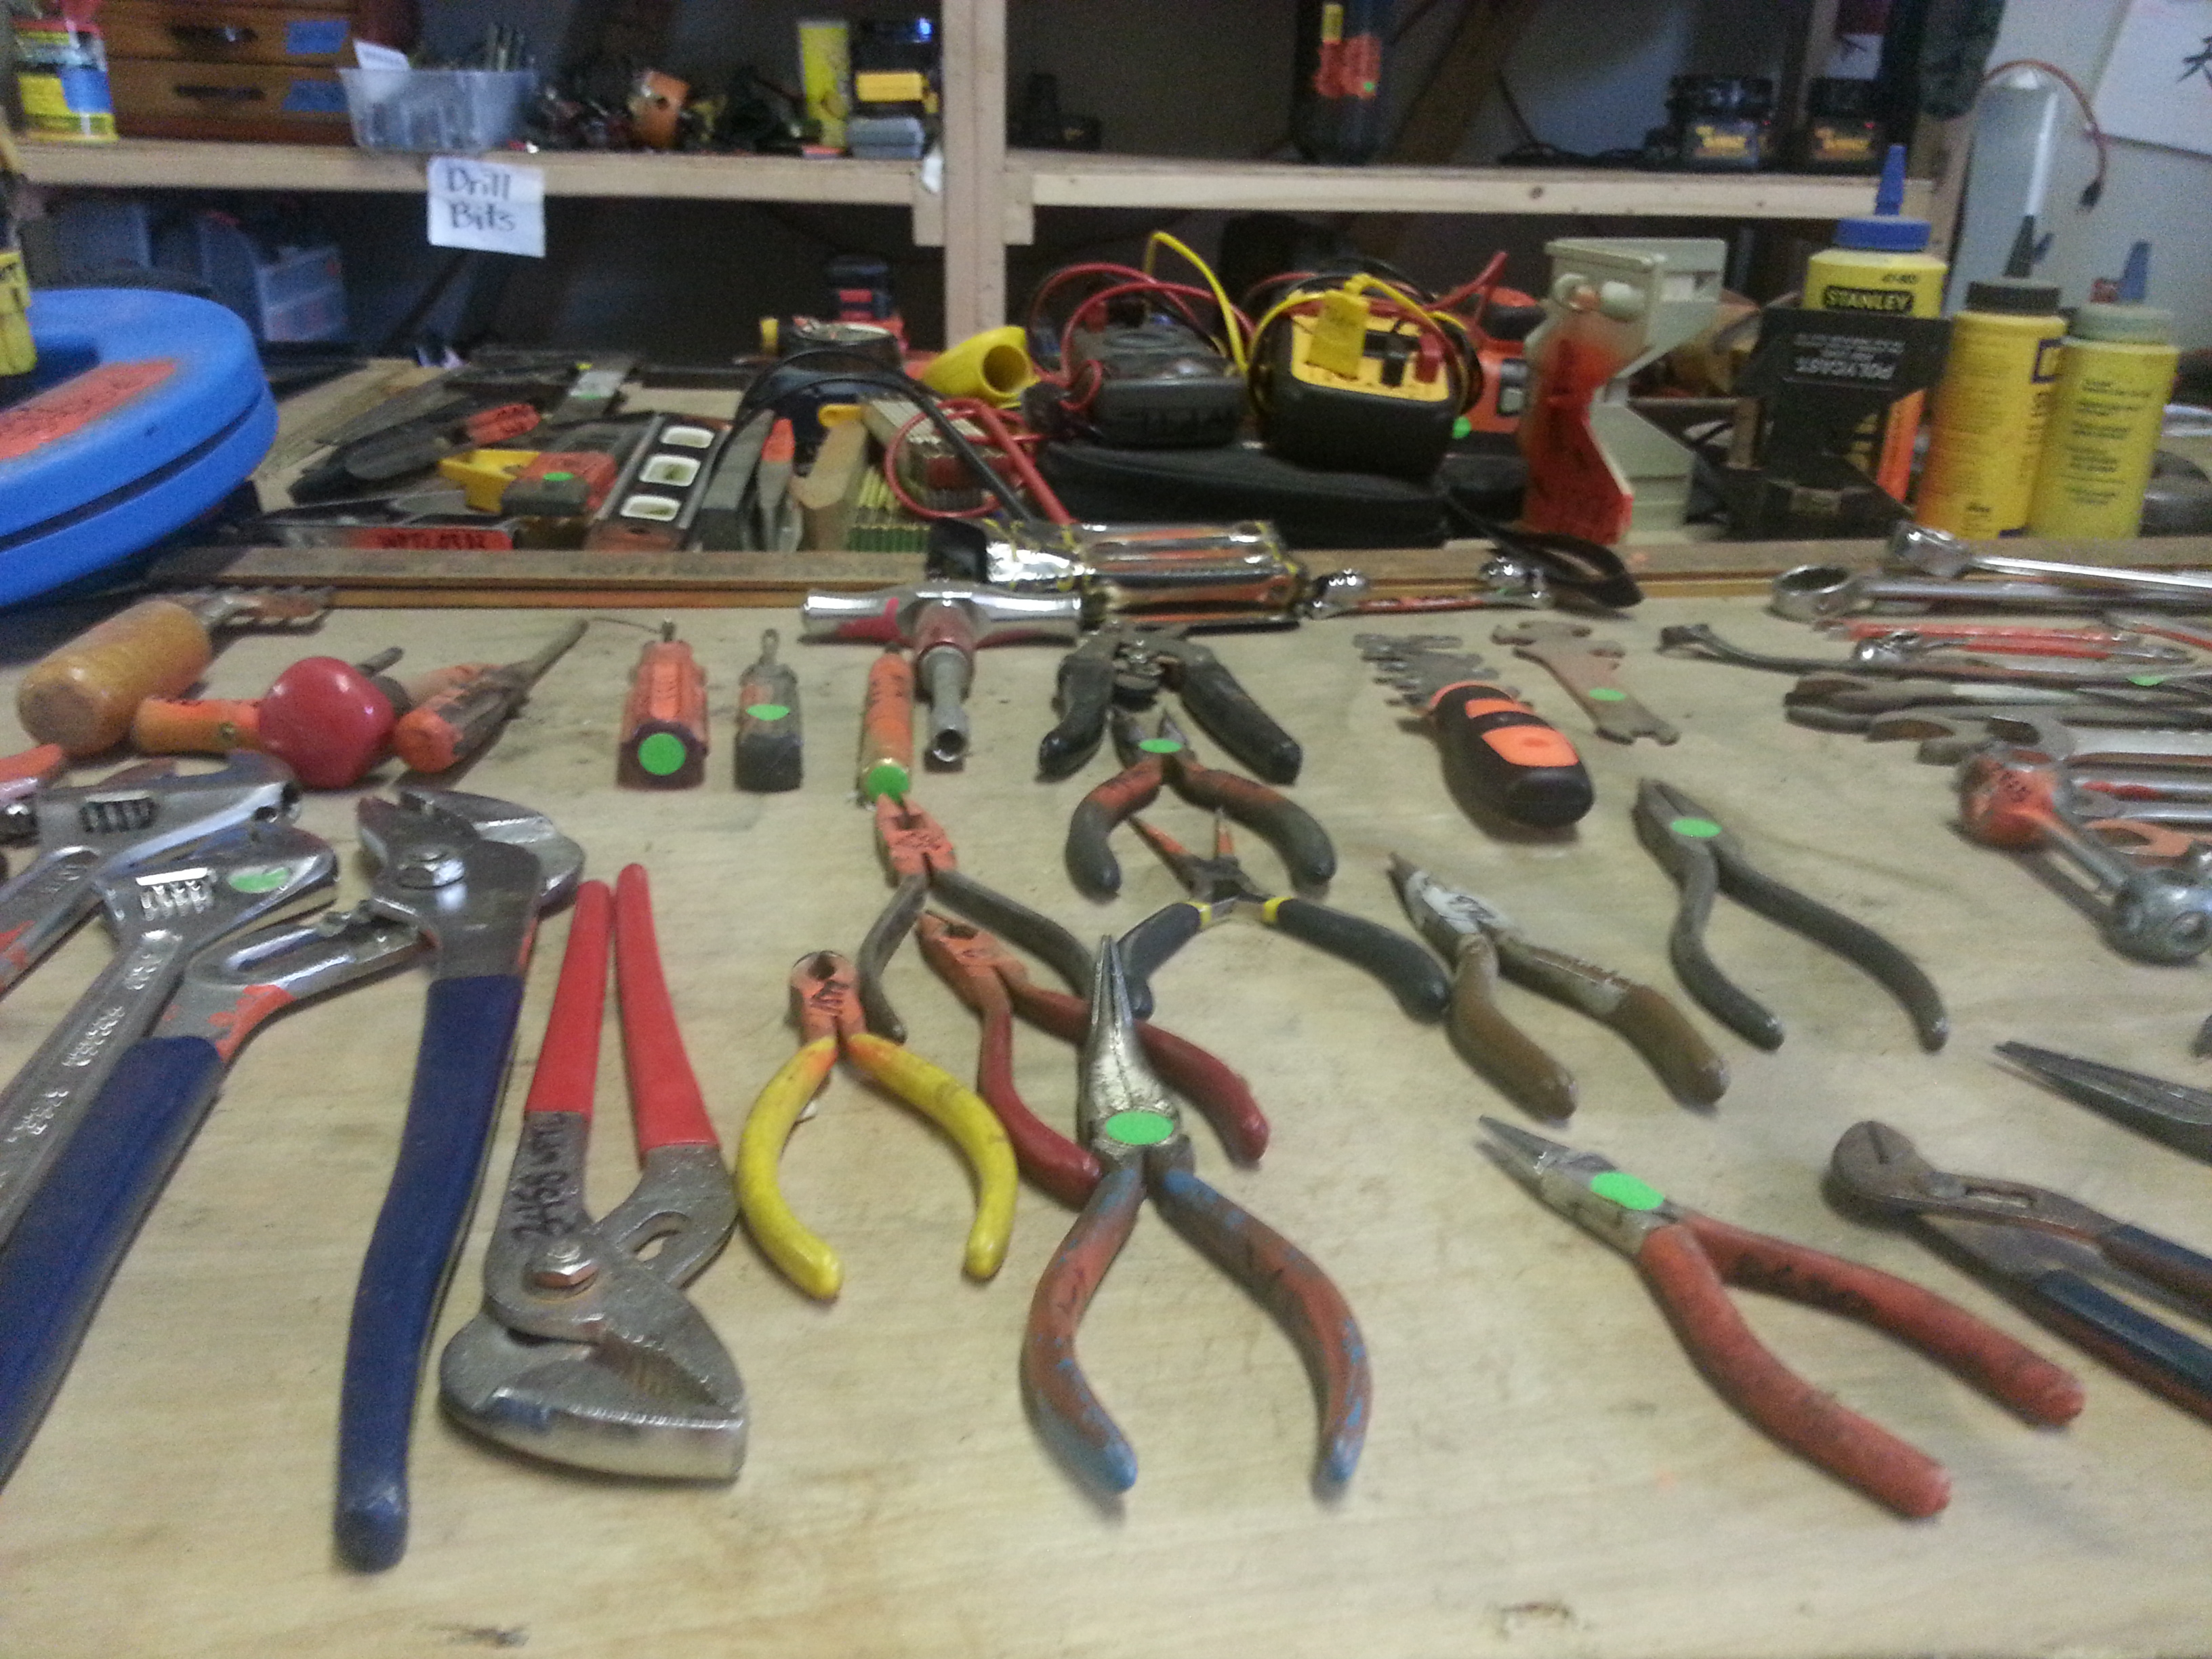 Tool Library pliers and wrenches